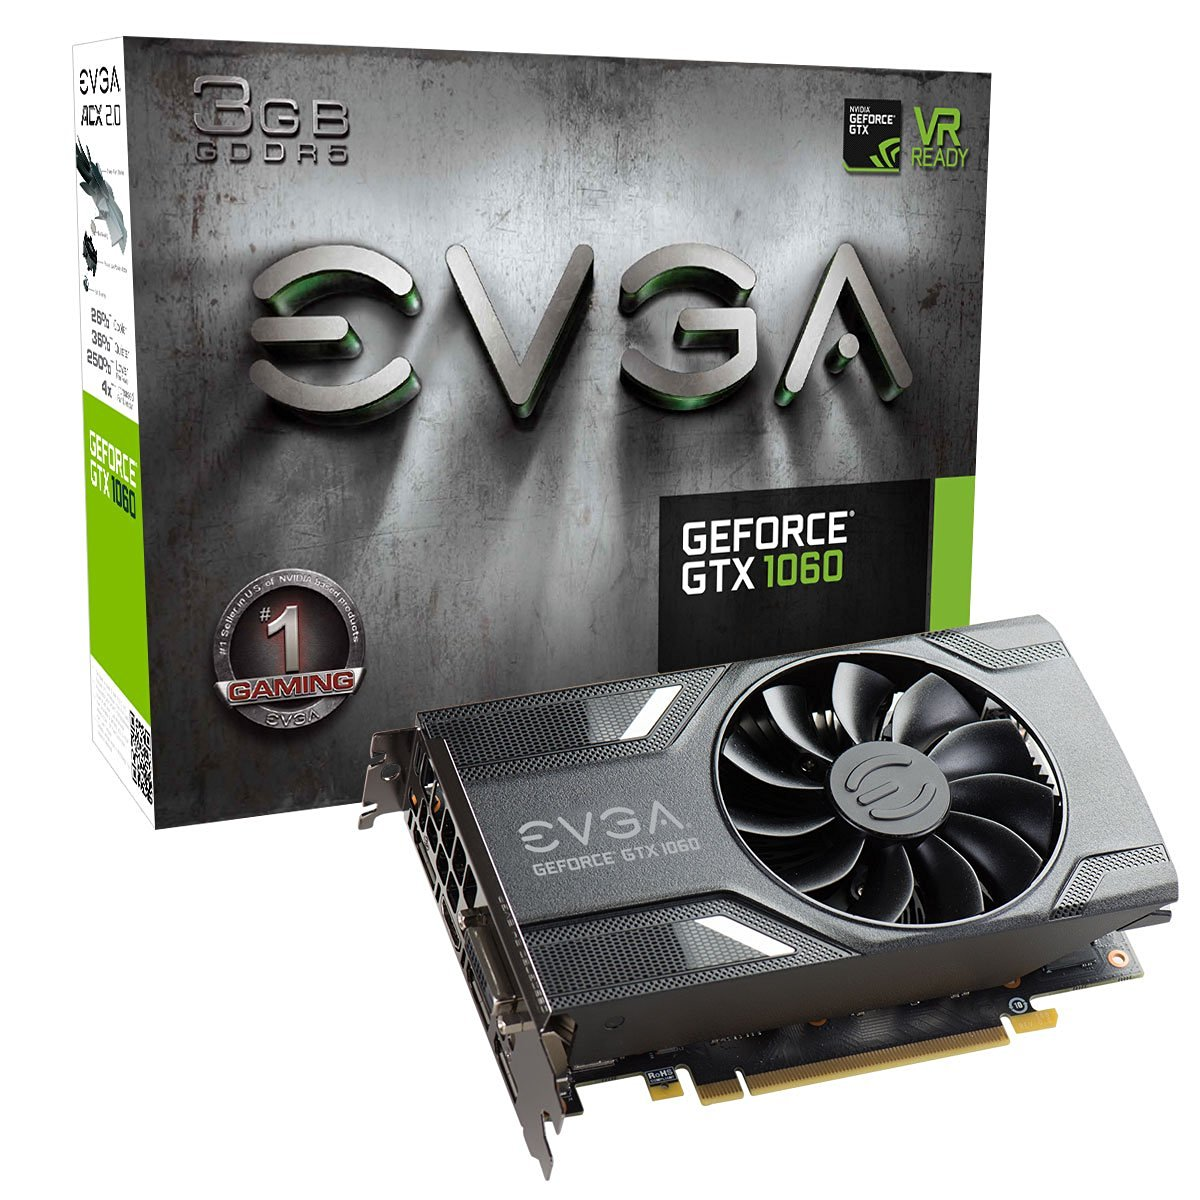 EVGA GeForce GTX 1060 3GB GAMING VR Ready Graphics Card | 03G-P4-6160-KR